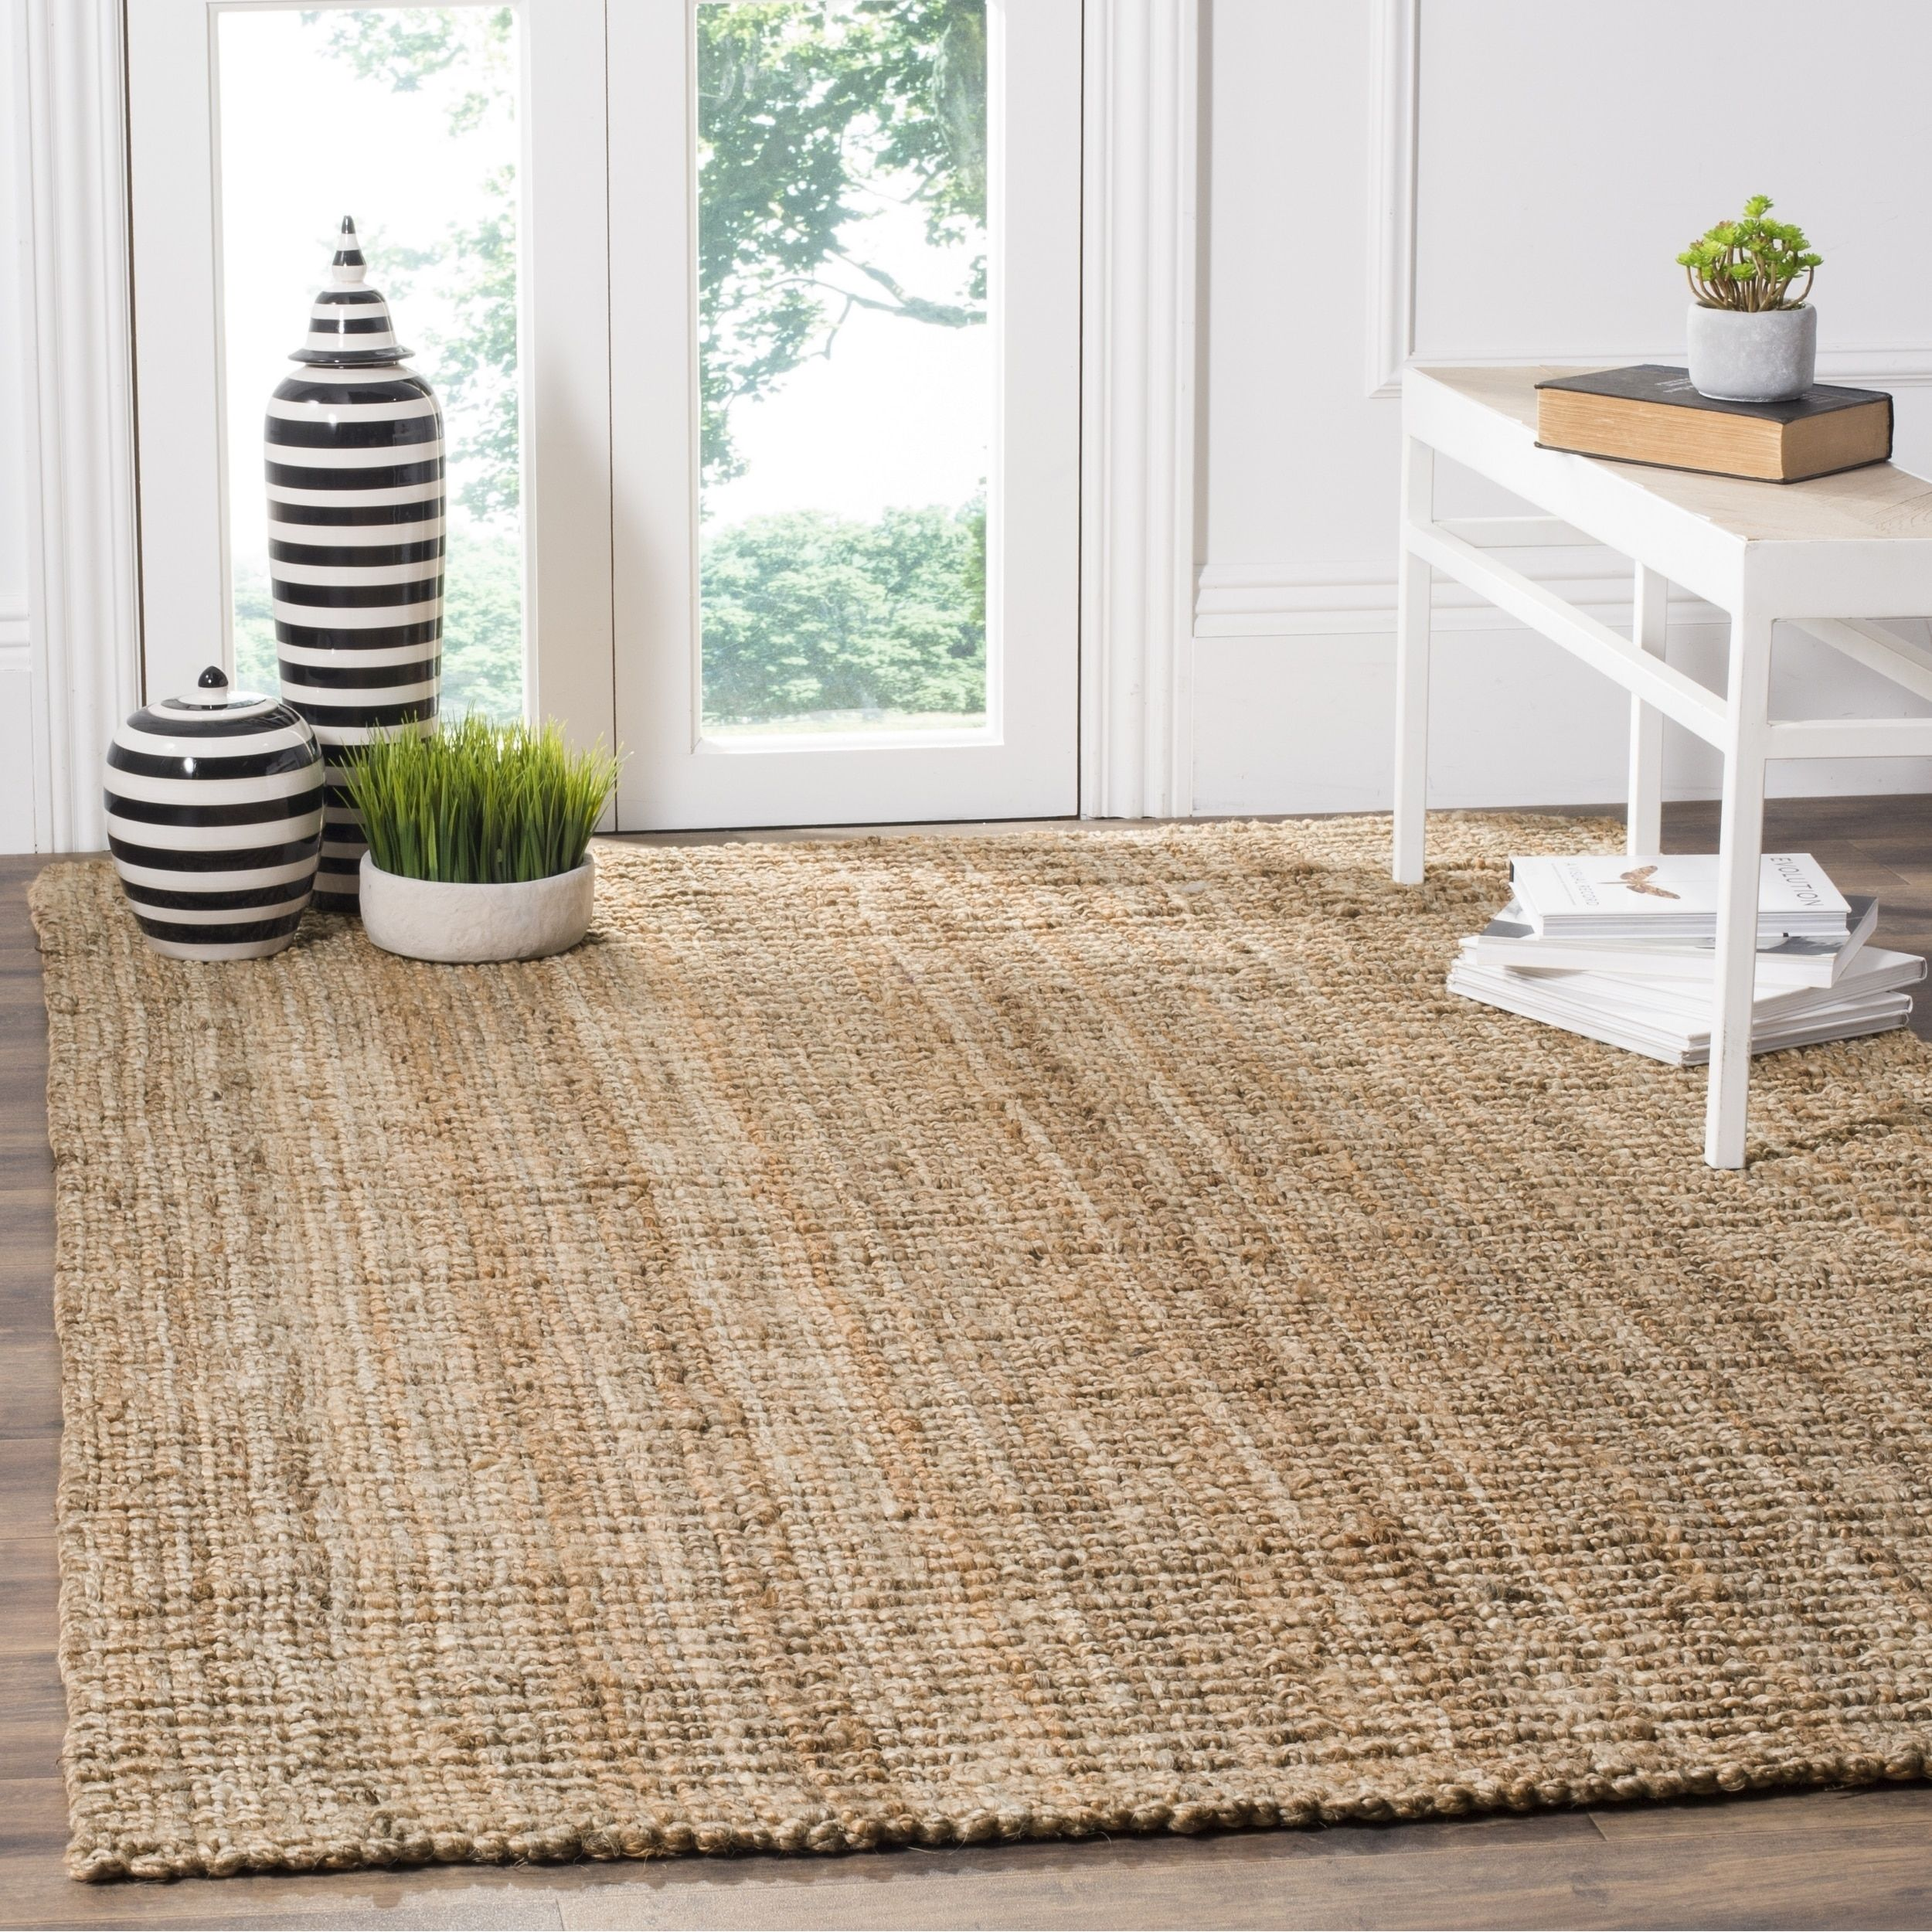 Safavieh Casual Natural Fiber Hand Woven Accents Chunky Thick Jute Rug 6